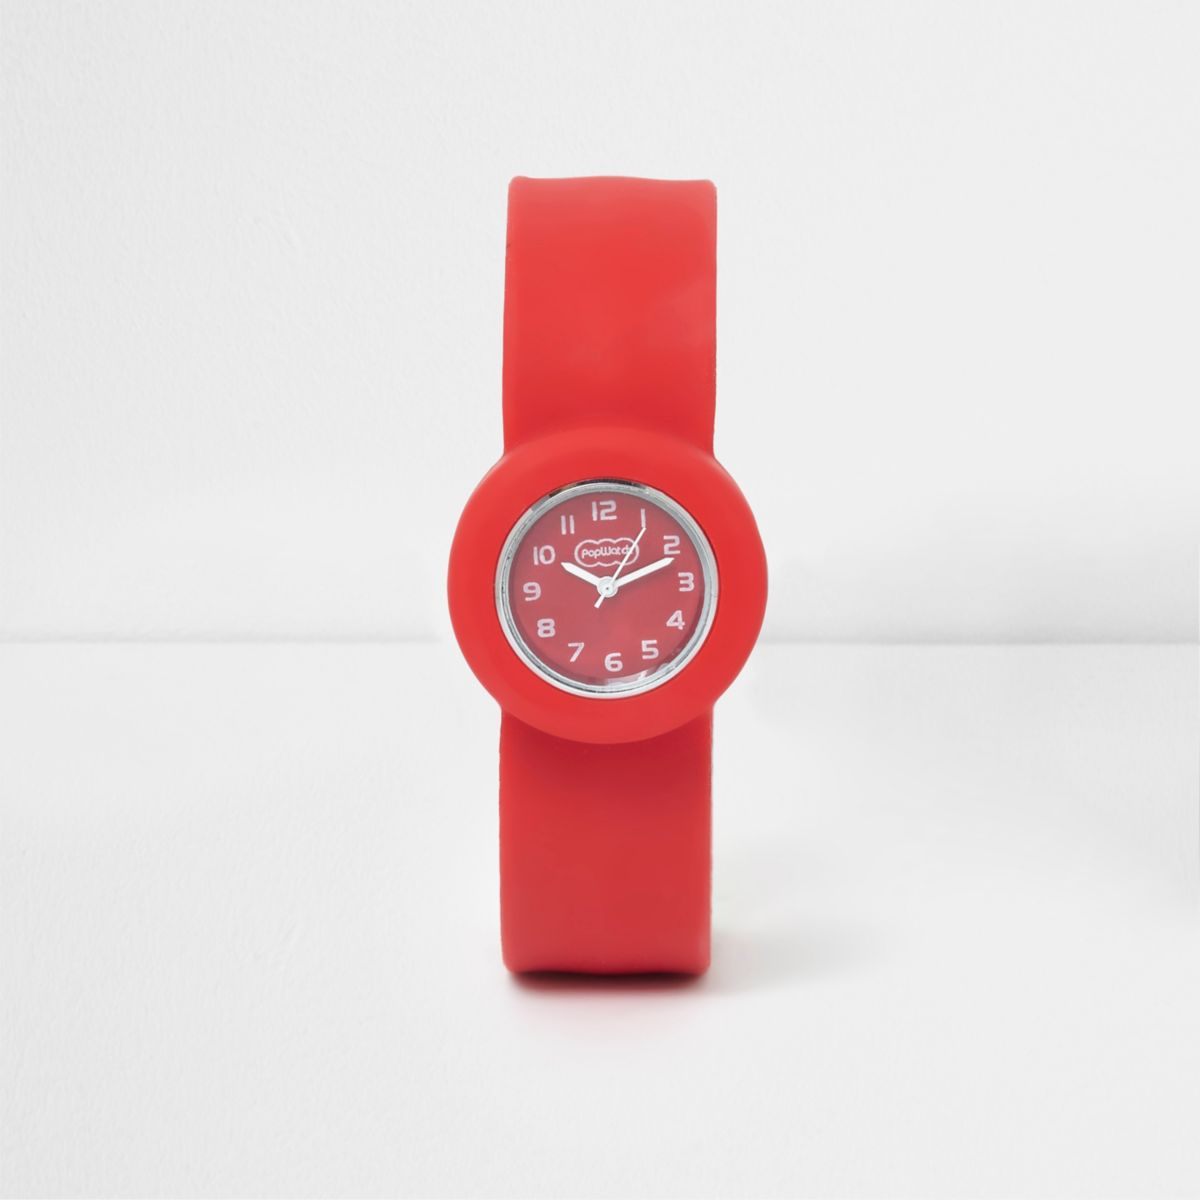 Boys red snap on watch